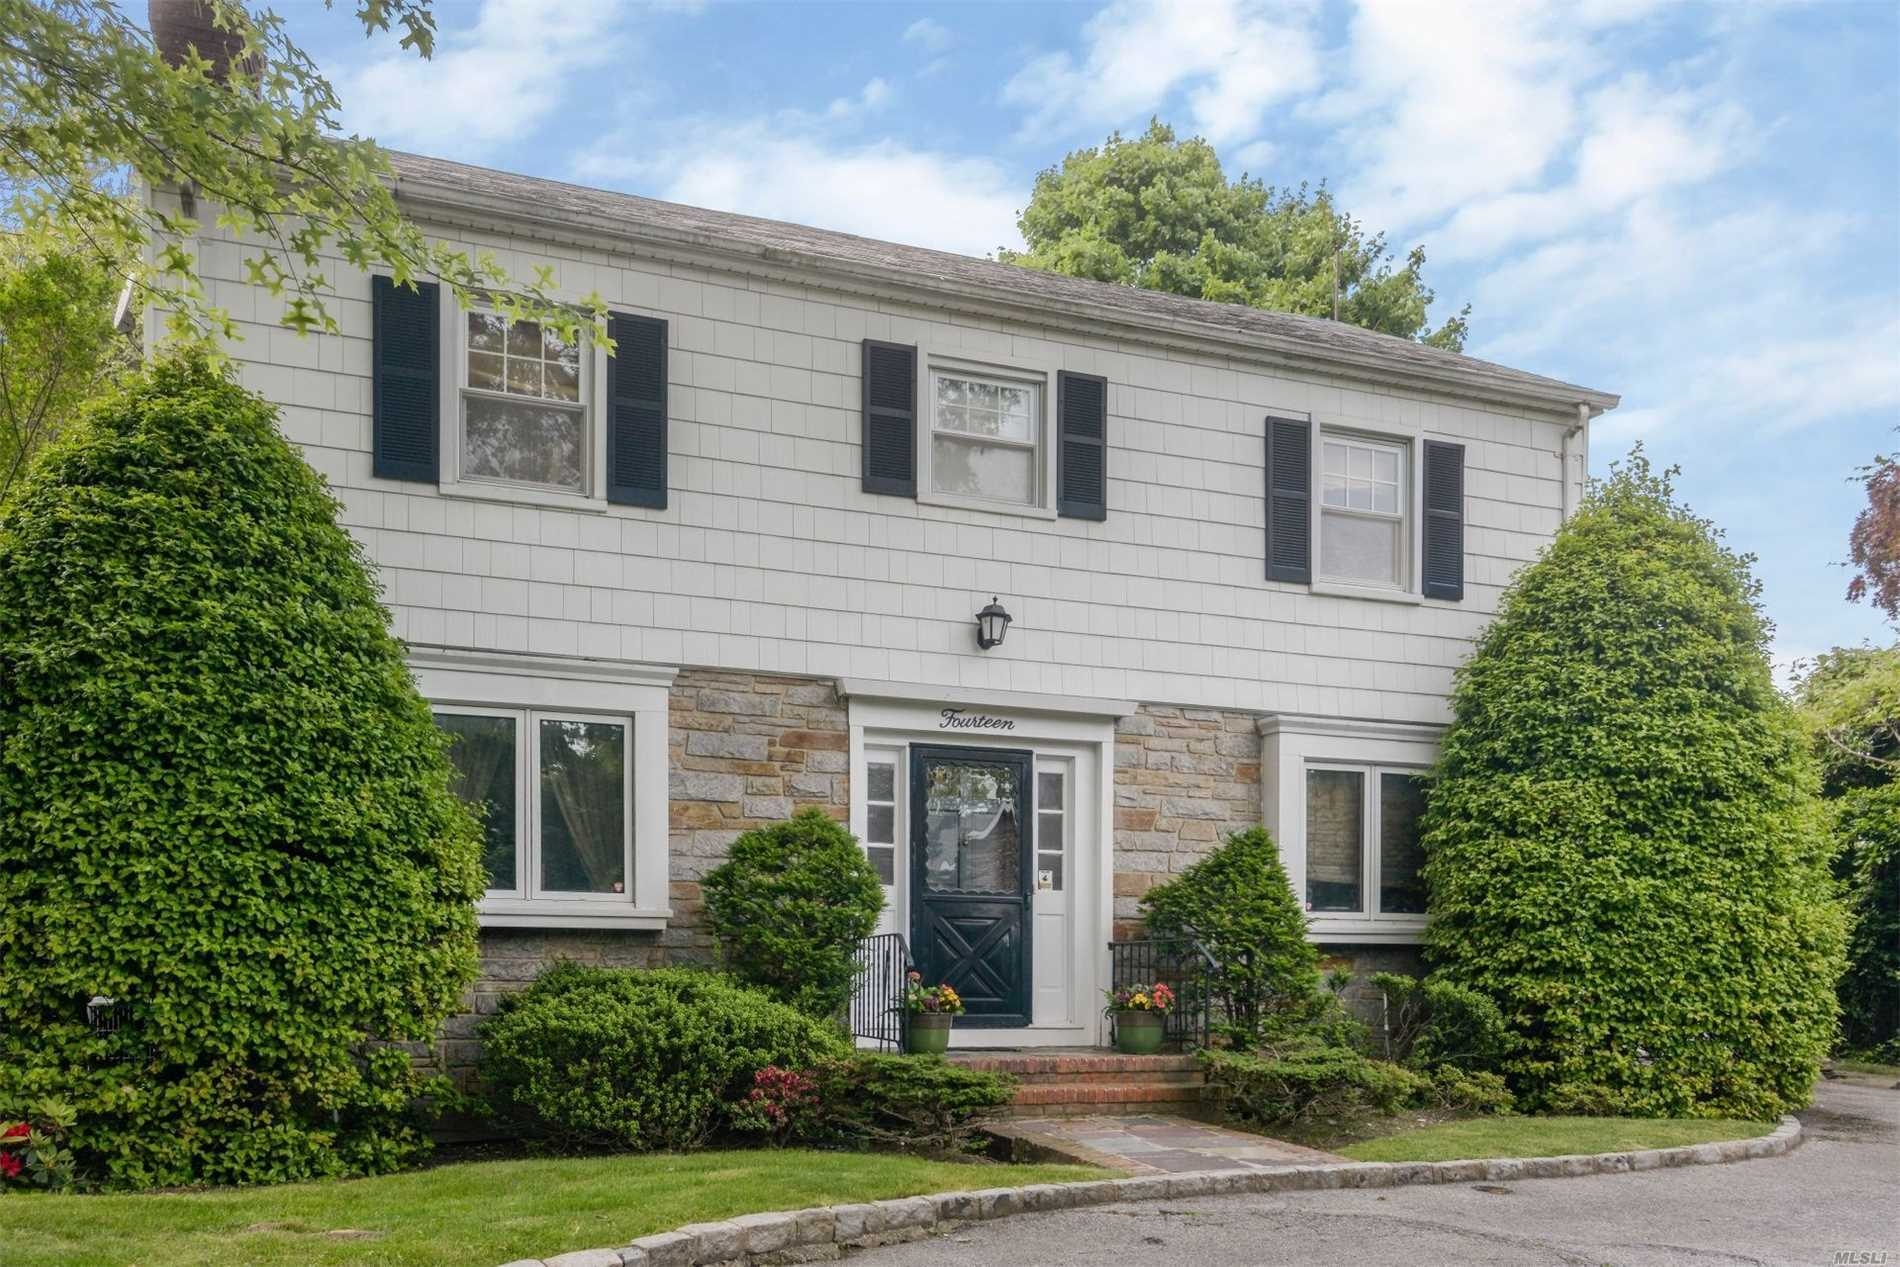 Rare Oversized Lawrence Property On Quite Dead-End St In Desirable Sutton Park Area! This Perfectly Situated Centerhall Colonial Residence Features 4 Bedrooms, 3 Bathrooms, Gracious Living Spaces & More. The Finished Basement Features A Large Room & Generous Storage. Double Lot Property.